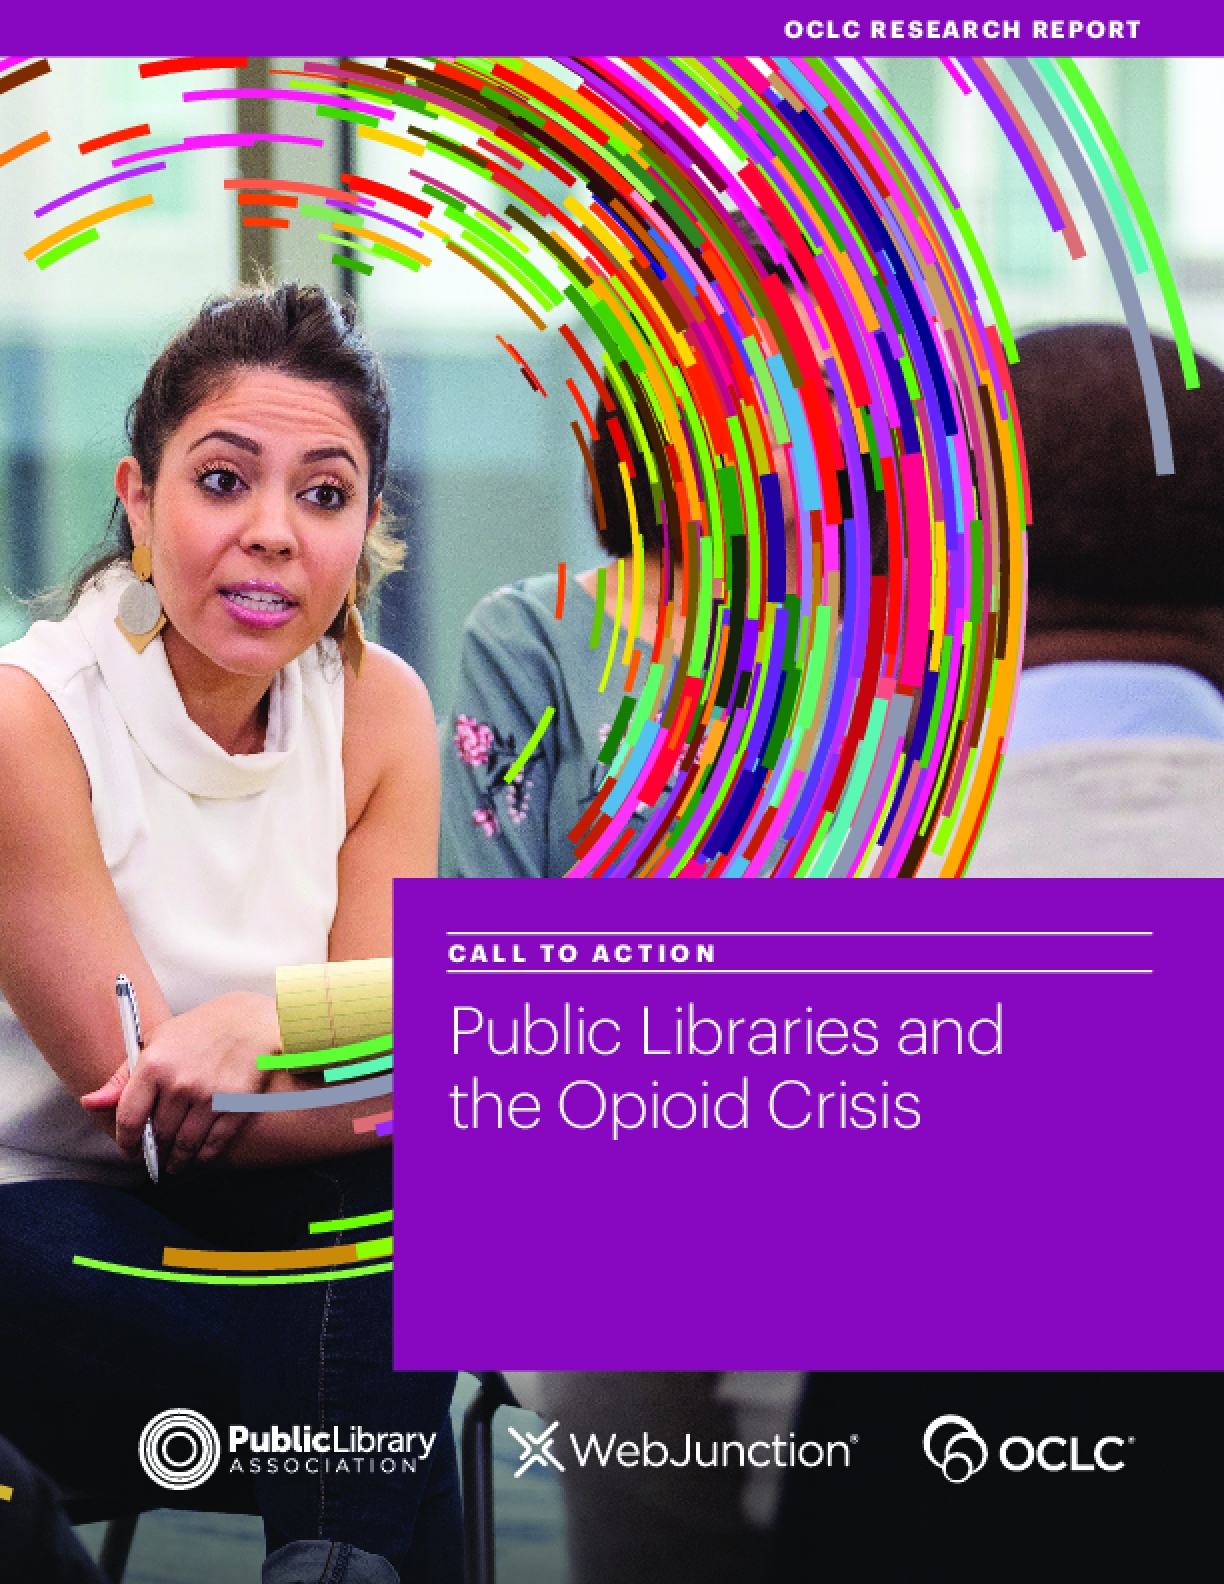 Call to Action: Public Libraries and the Opioid Crisis